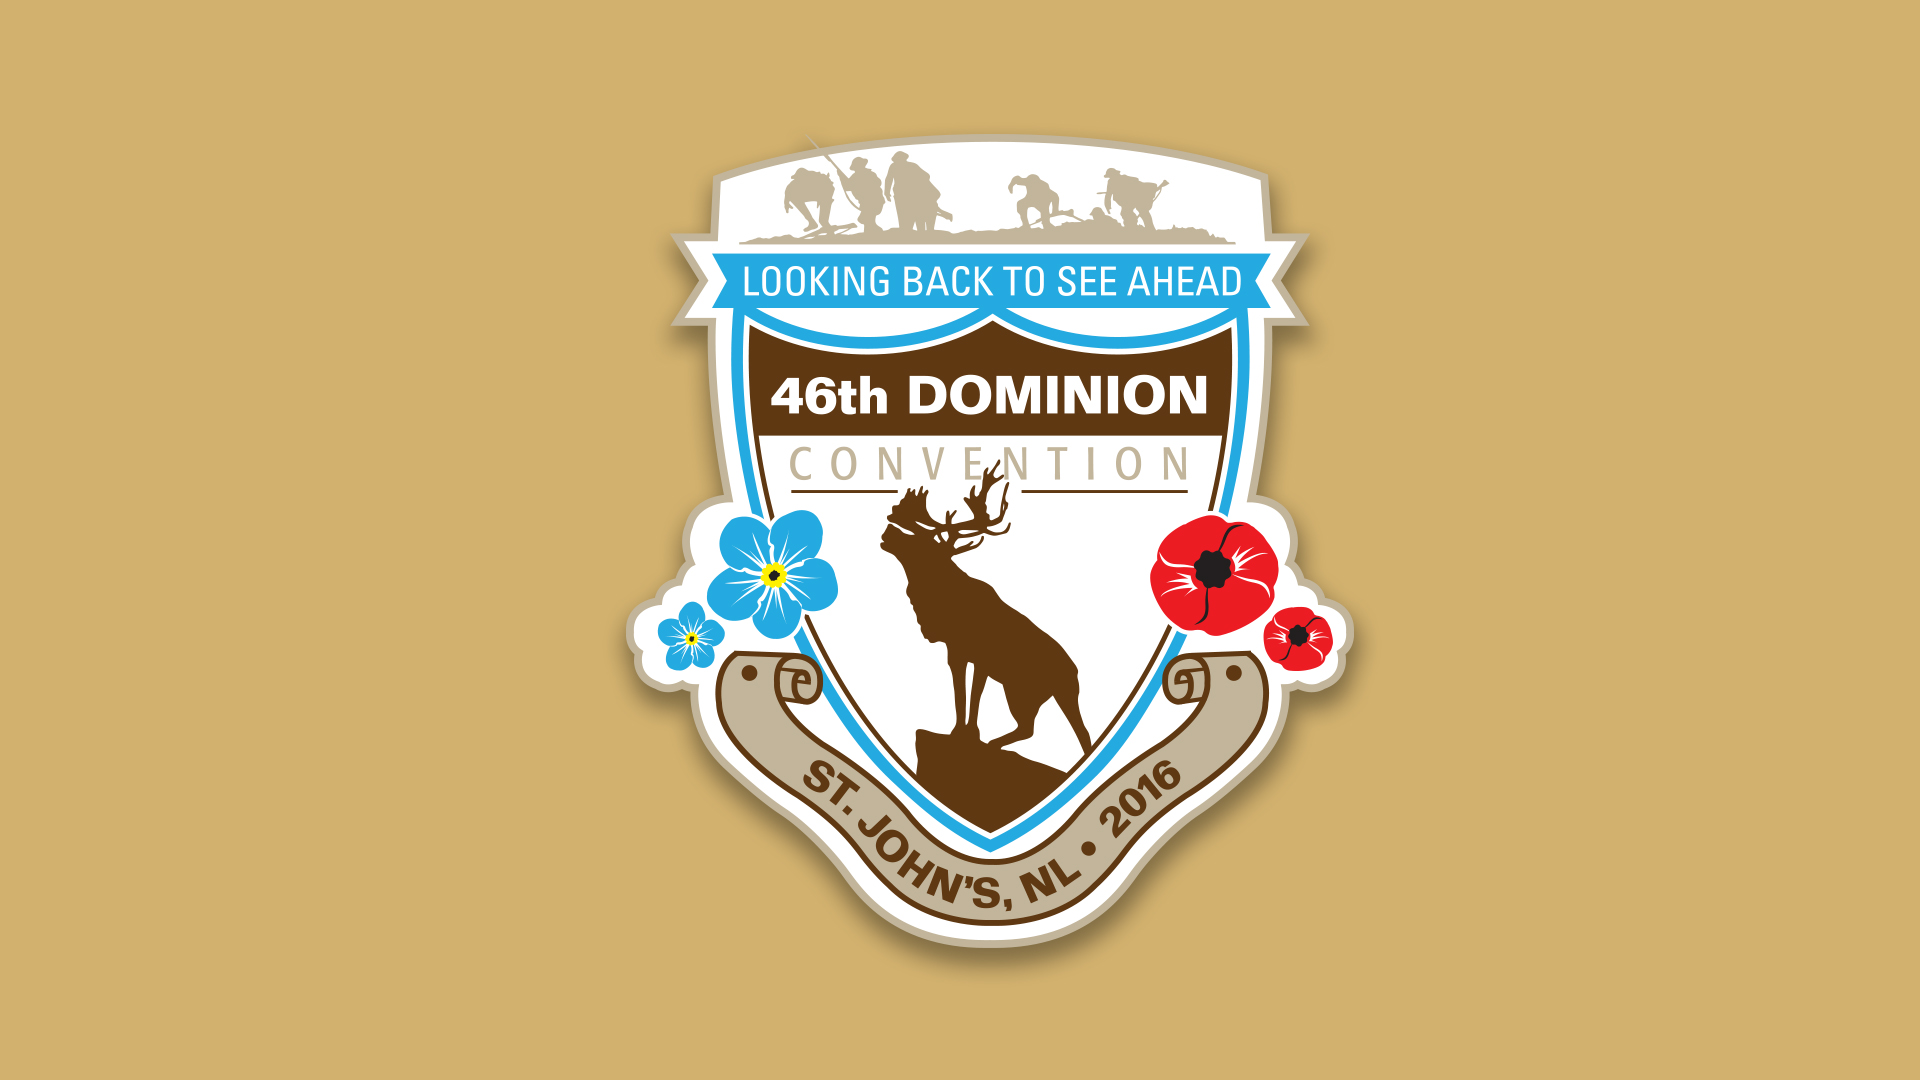 46 Dominion Convention Crest